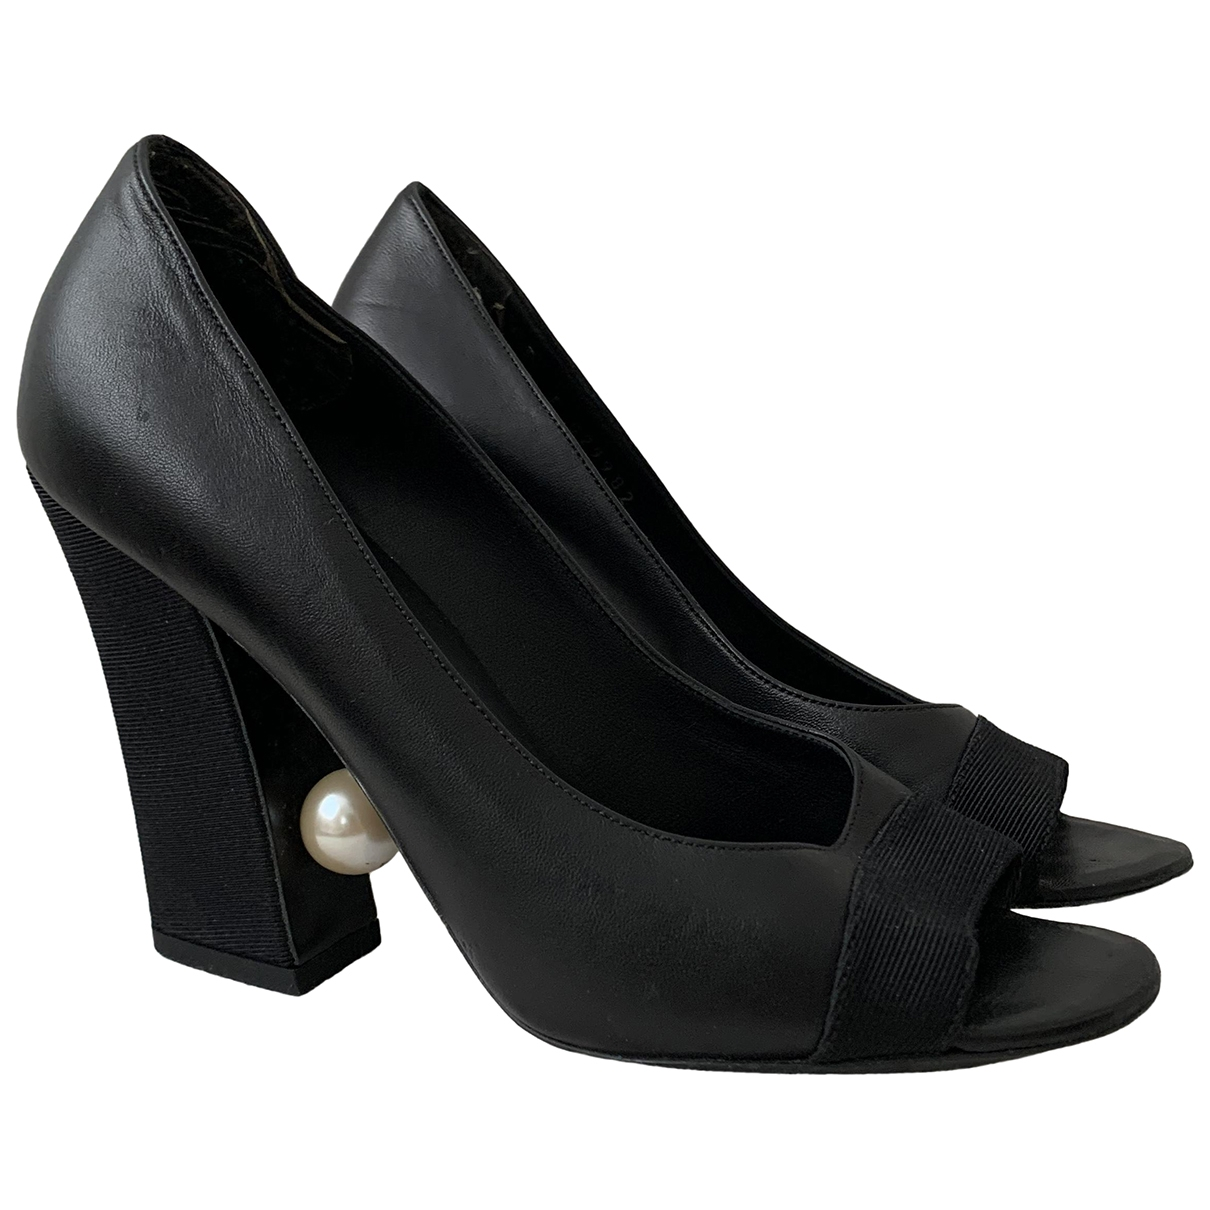 Chanel \N Black Leather Heels for Women 36.5 EU